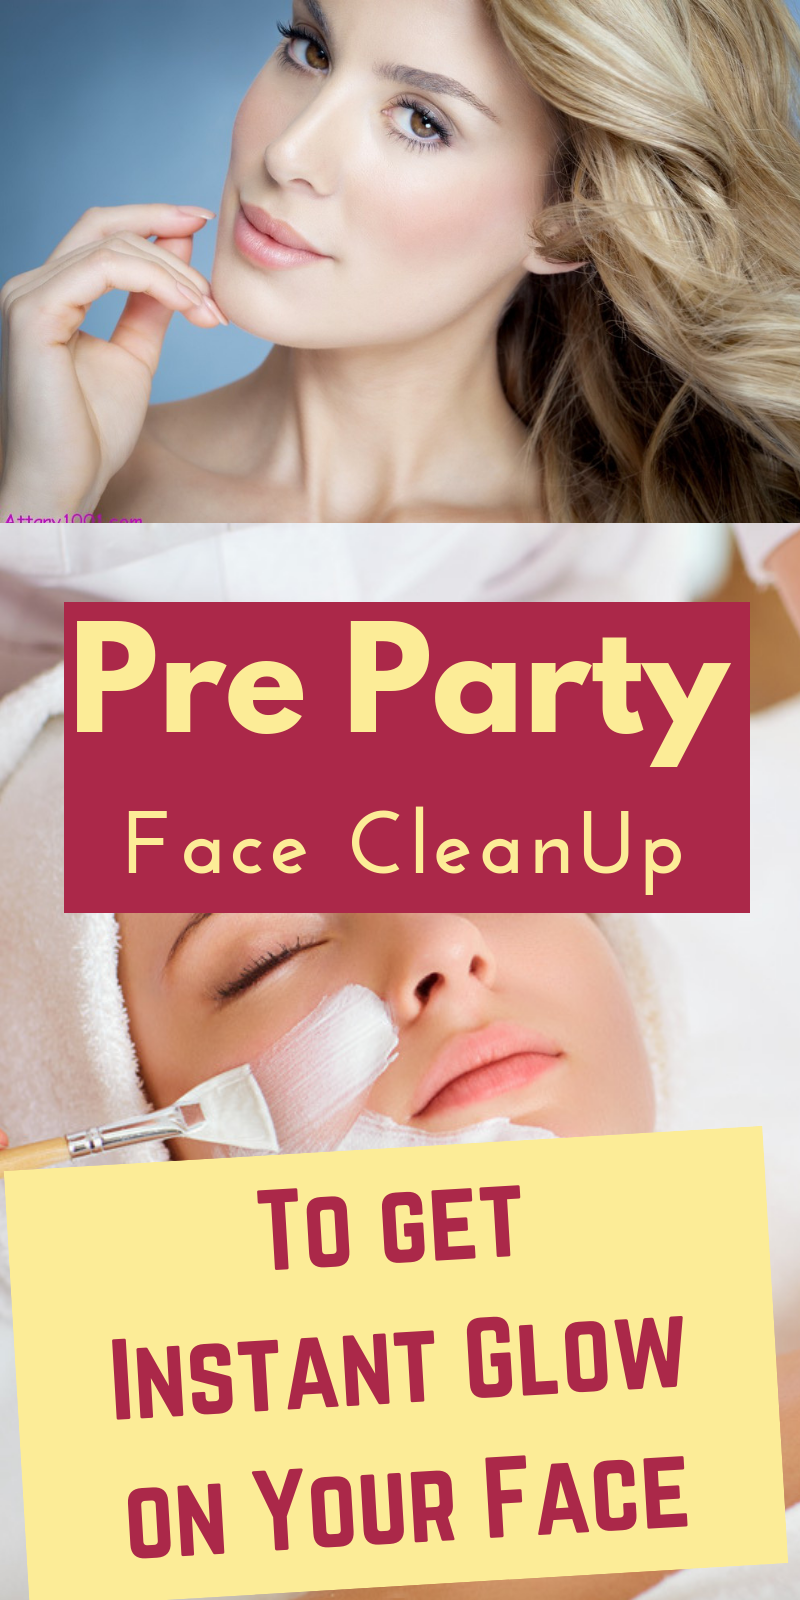 amazing face clean up that you must do before any party to get